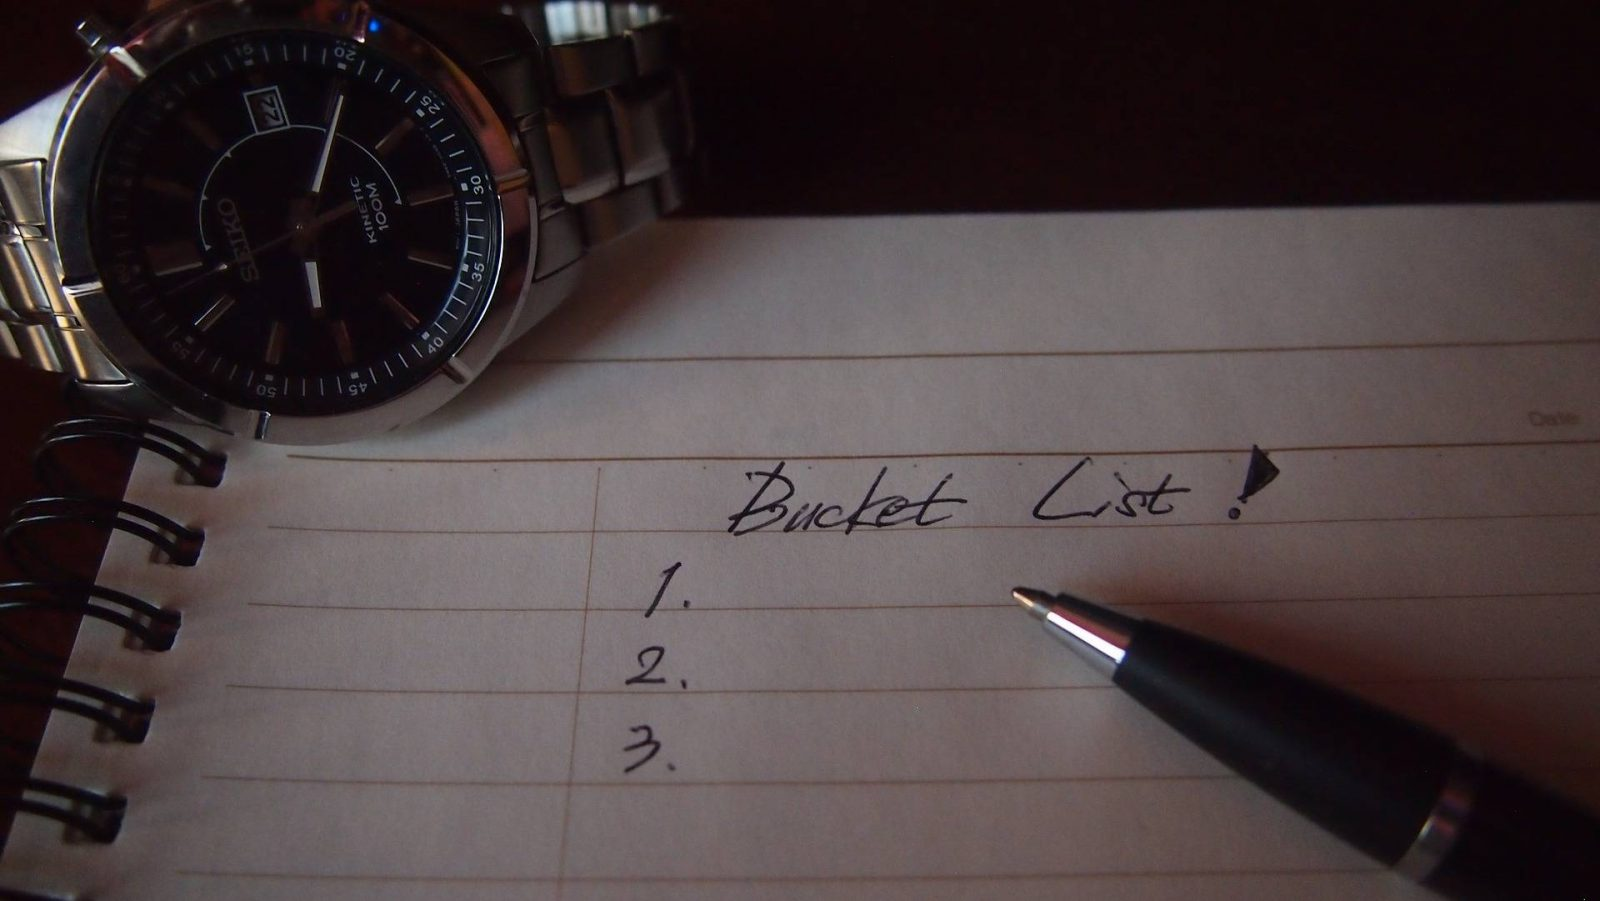 Why I've Finally Decided To Make a Bucket List